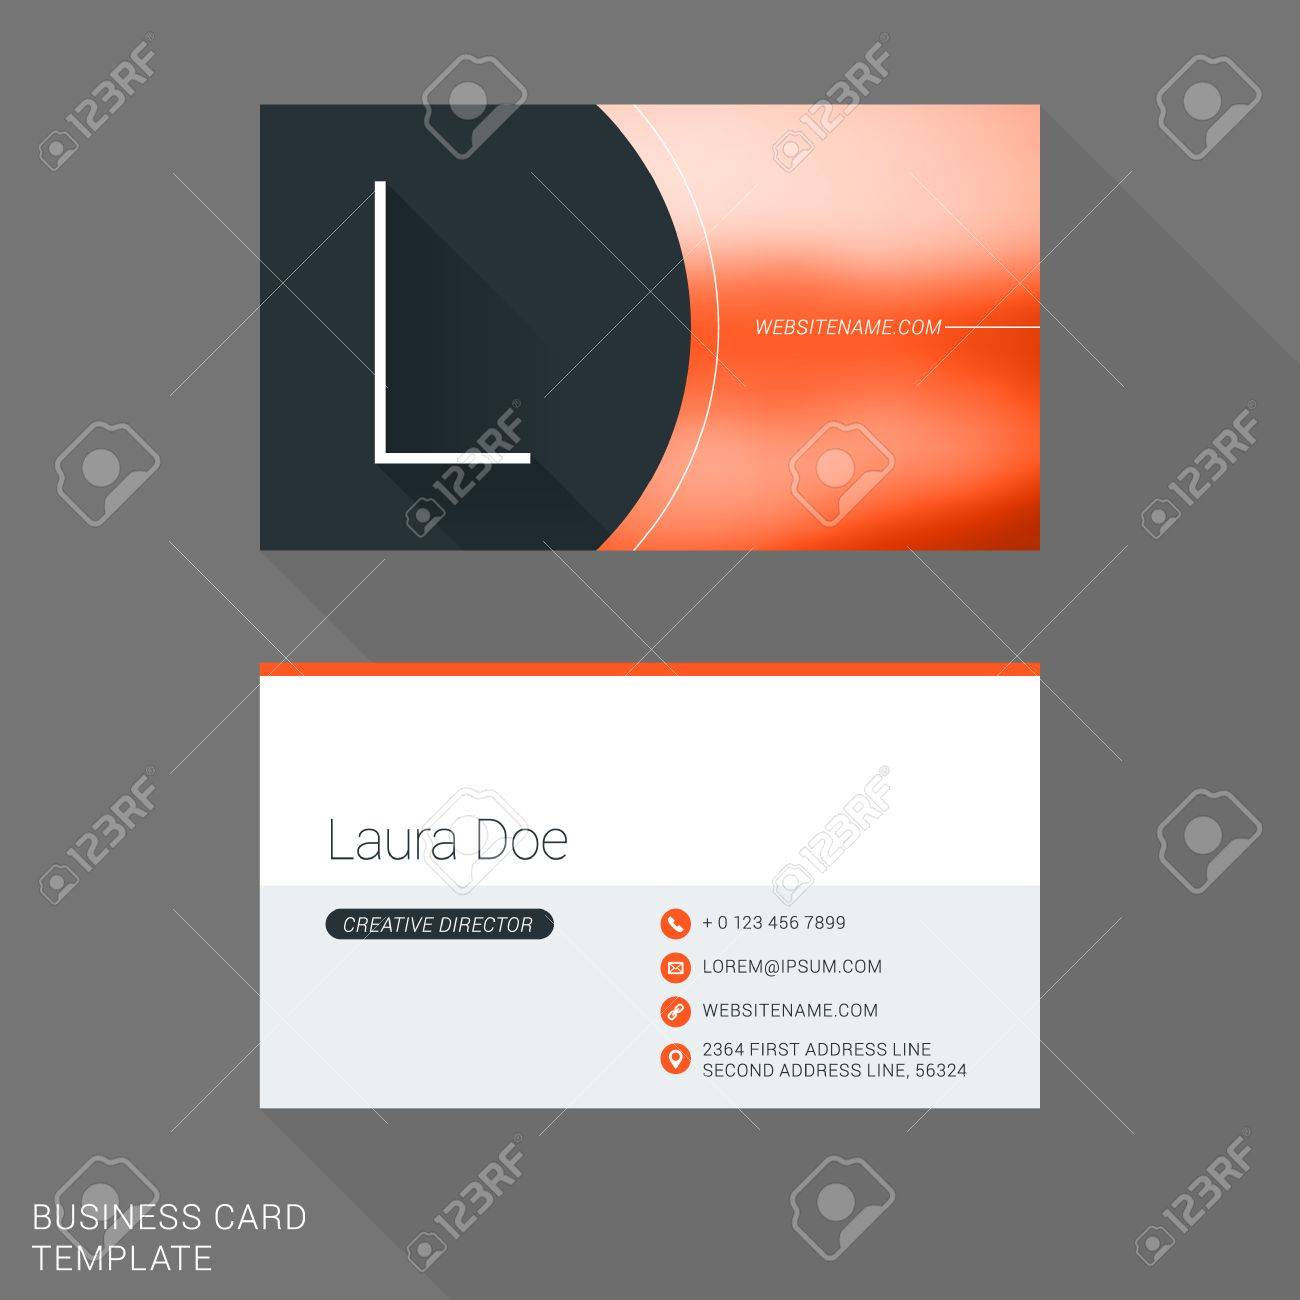 Creative business card template letter l flat design vector creative business card template letter l flat design vector illustration stationery design stock reheart Gallery